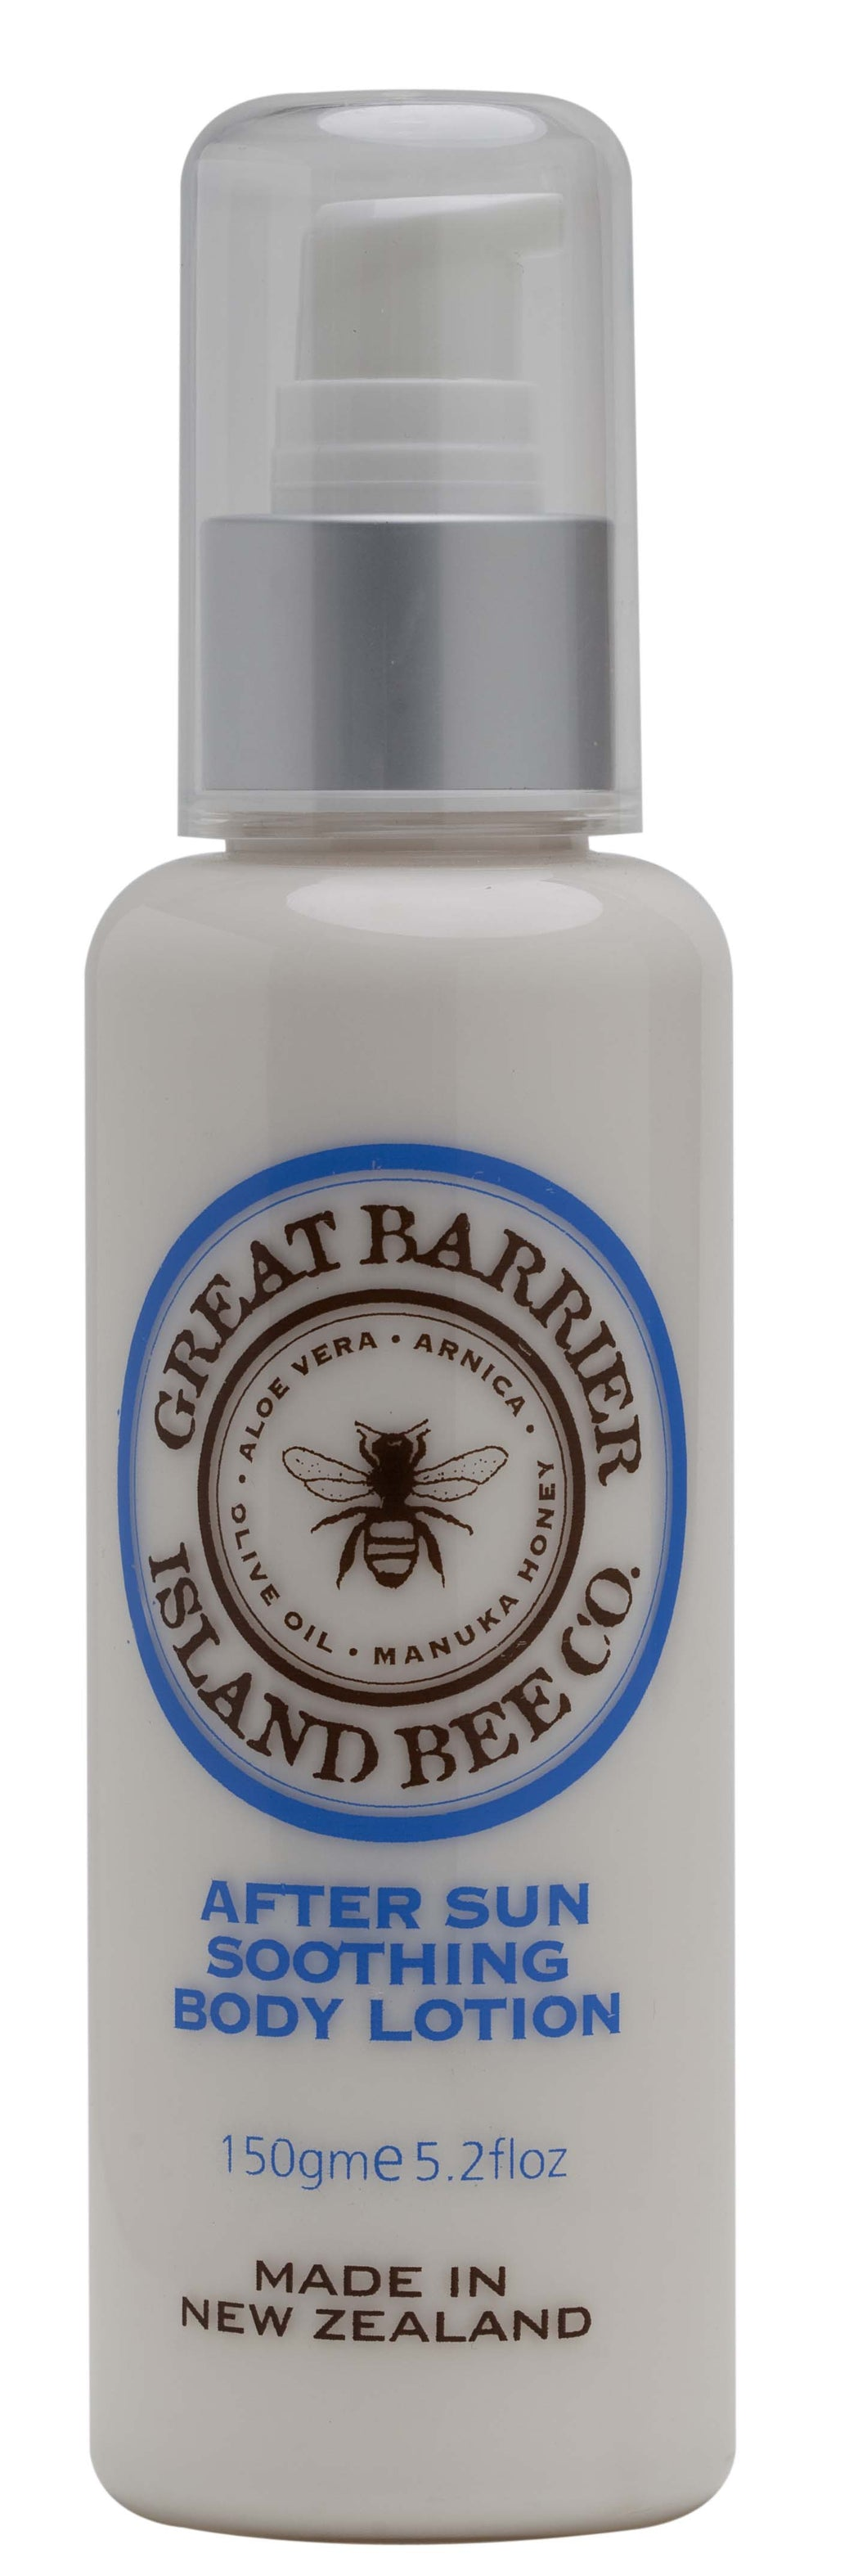 Great Barrier After Sun Soothing Body Lotion 5.2 oz